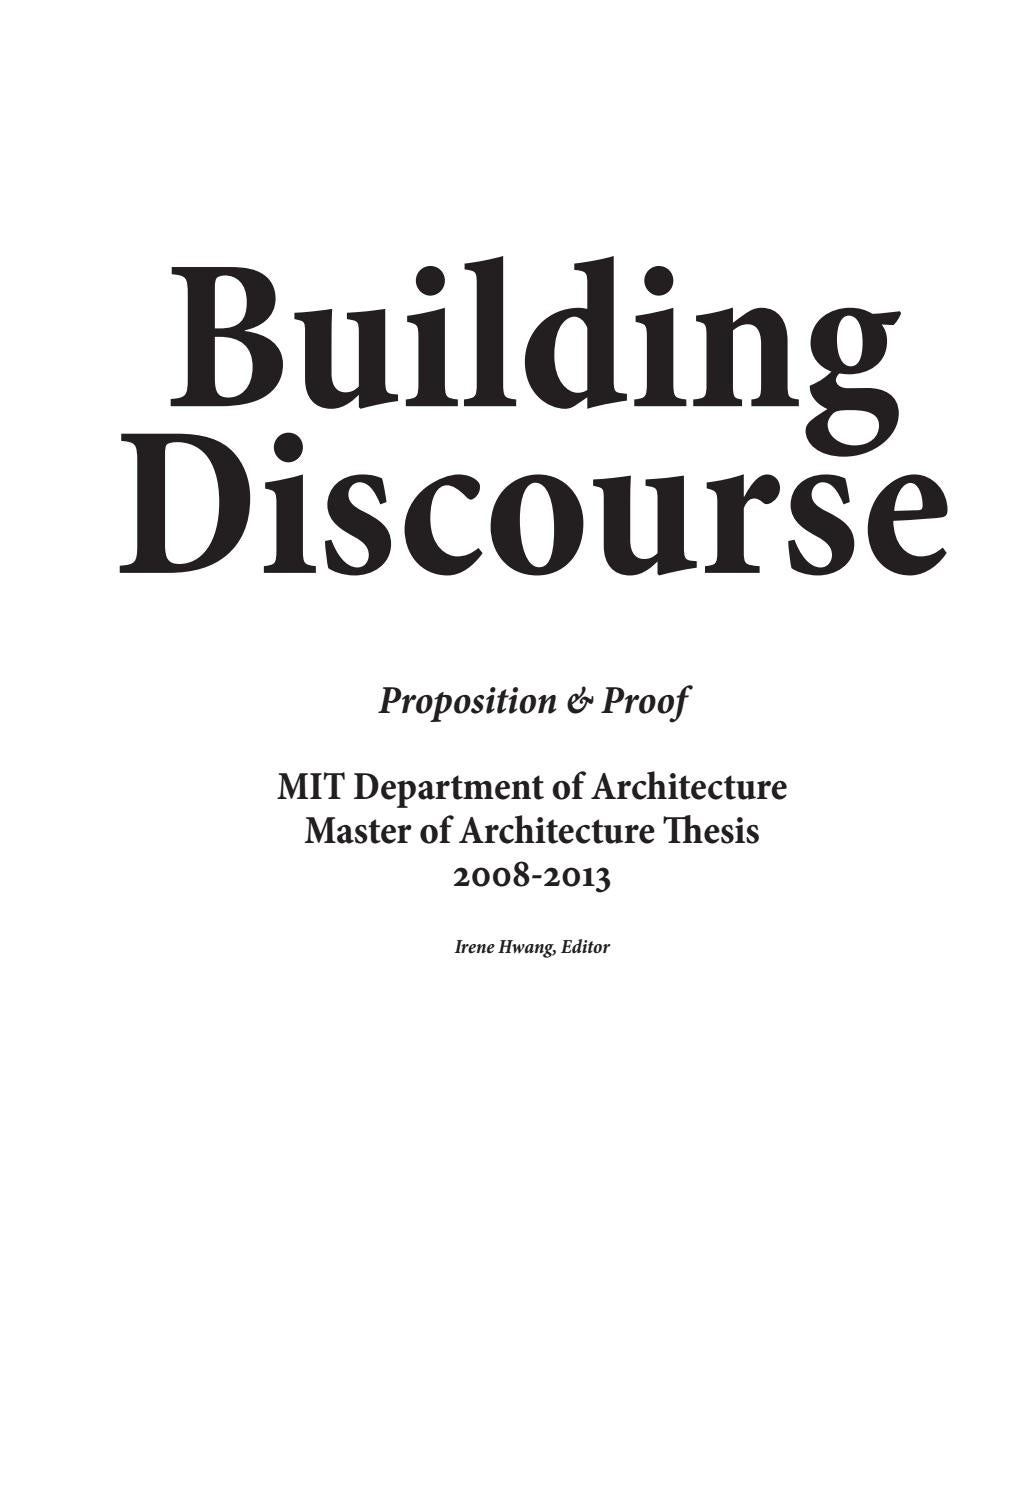 Building Discourse March Thesis Projects 2008 2013 By Mit 1990 Chrysler Imperial Wiring Diagram Architecture Issuu